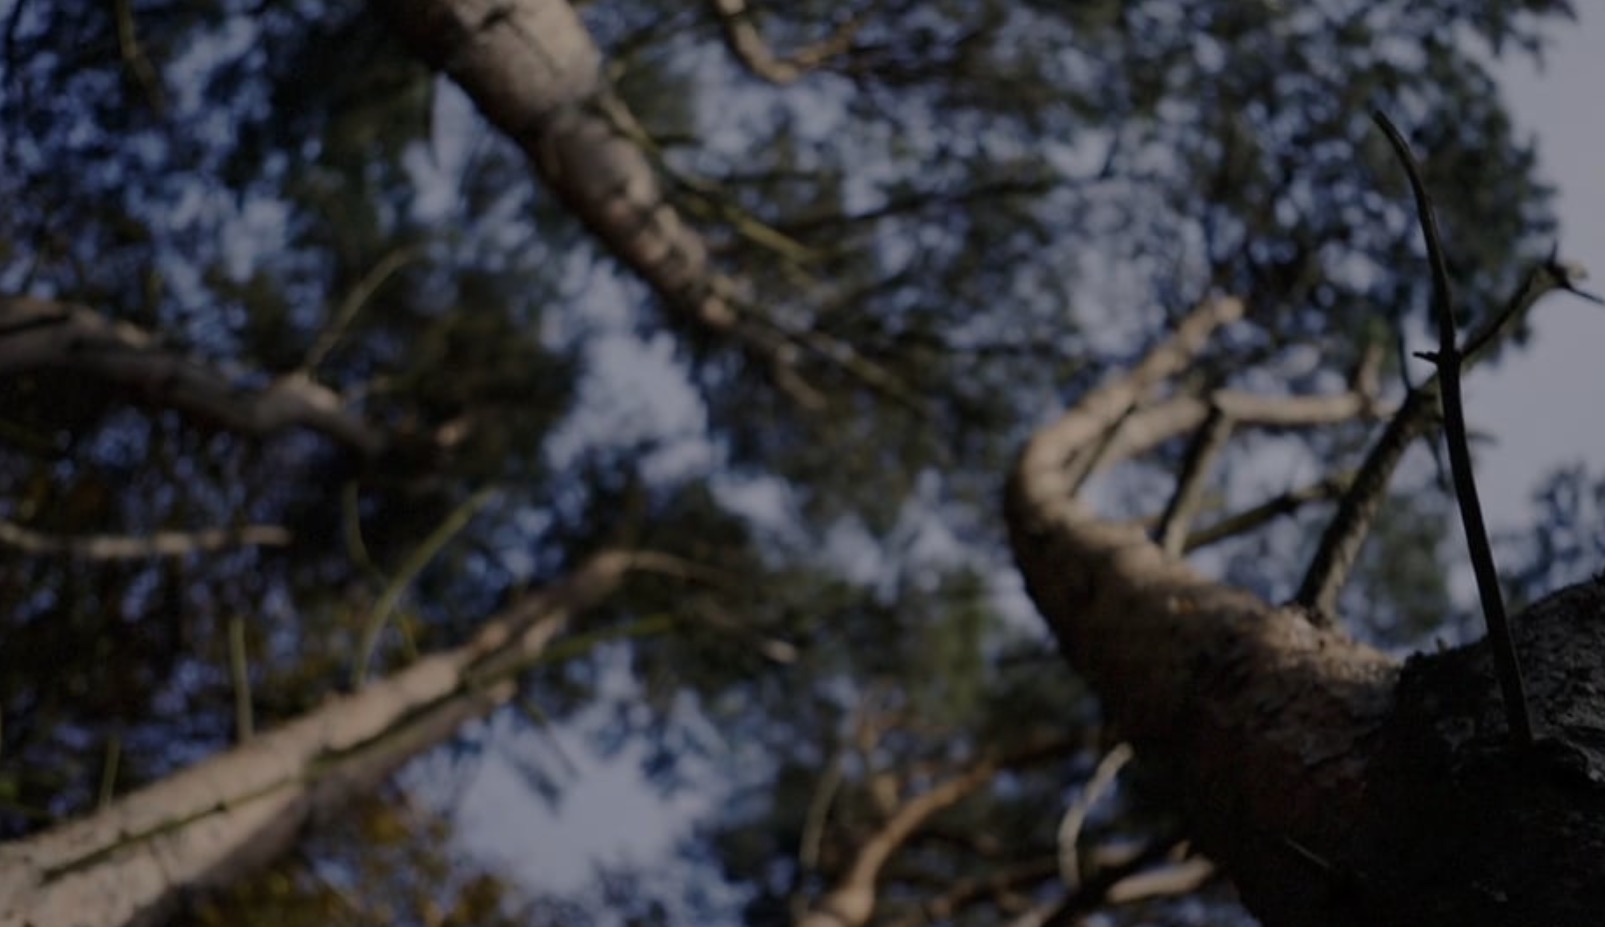 There's something lurking in the woods...These are the Beasts of the East, from CrossFit East Rocks.We spent a long time sketching, planning and making this film and we couldn't be more pleased with the result. Thanks to everyone involved, especially the East Rocks crew!A film by Jacob Walker, Last Light Films.